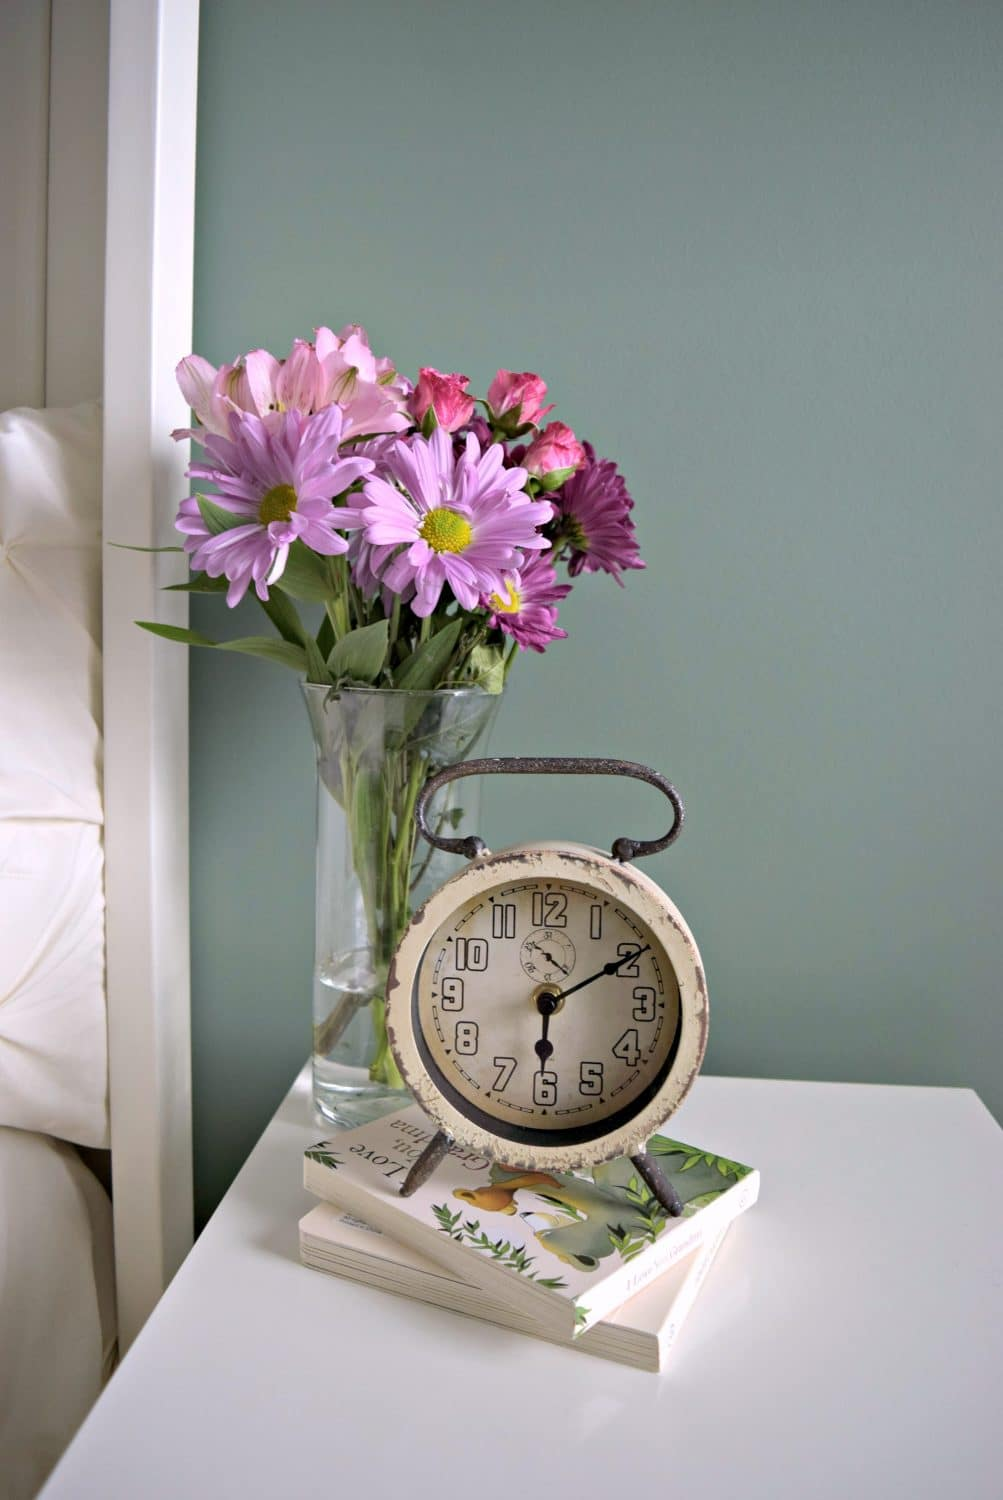 Nightstand Flowers and Clock